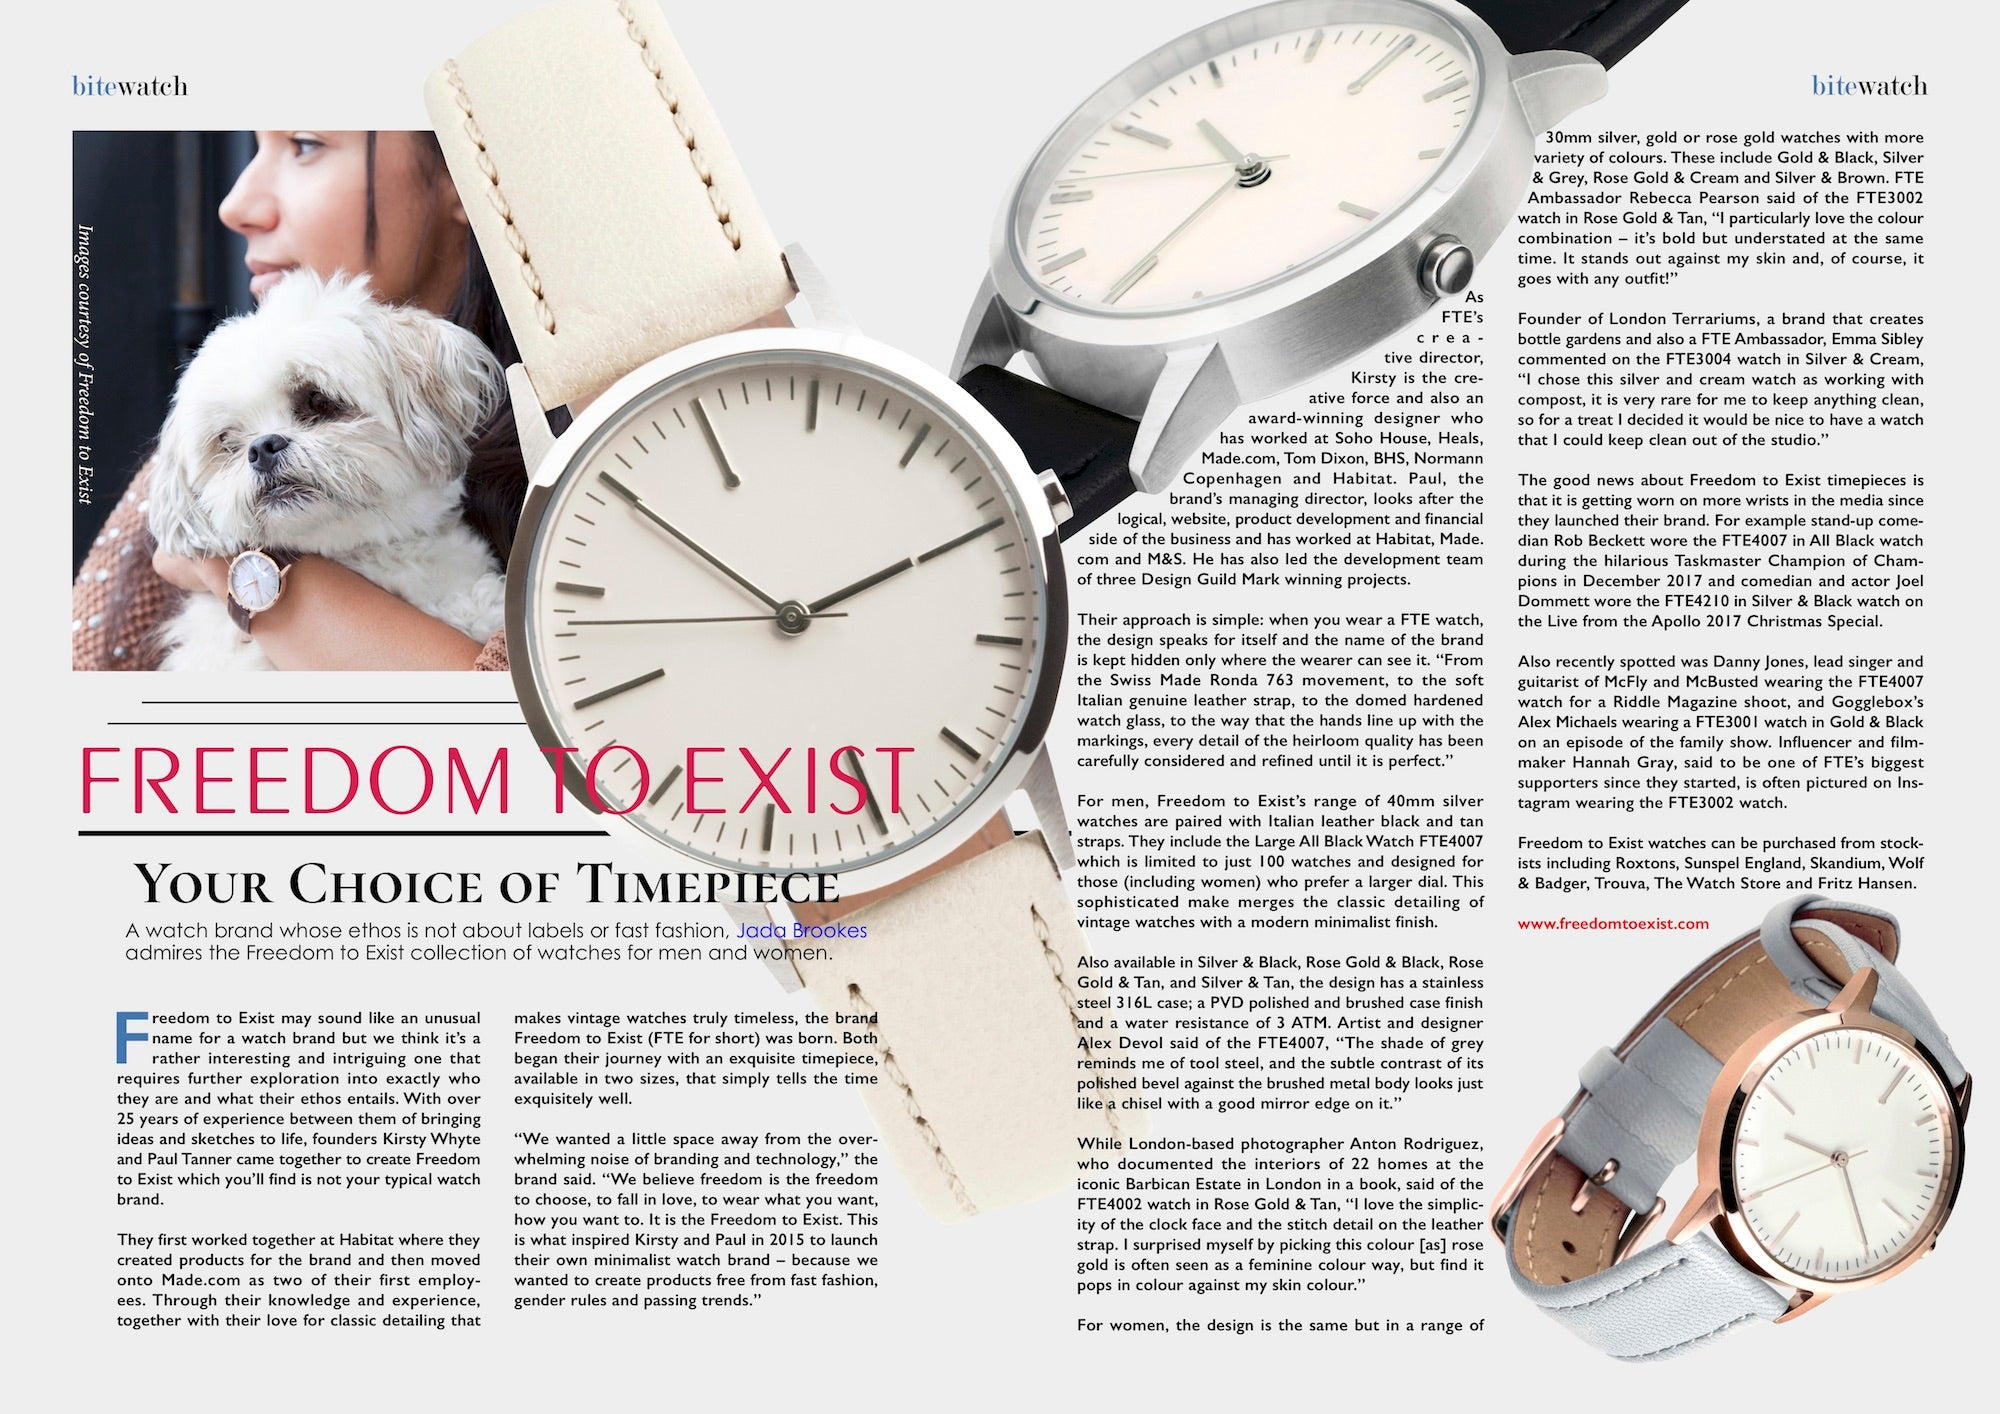 Bite Magazine - Freedom To Exist Watches